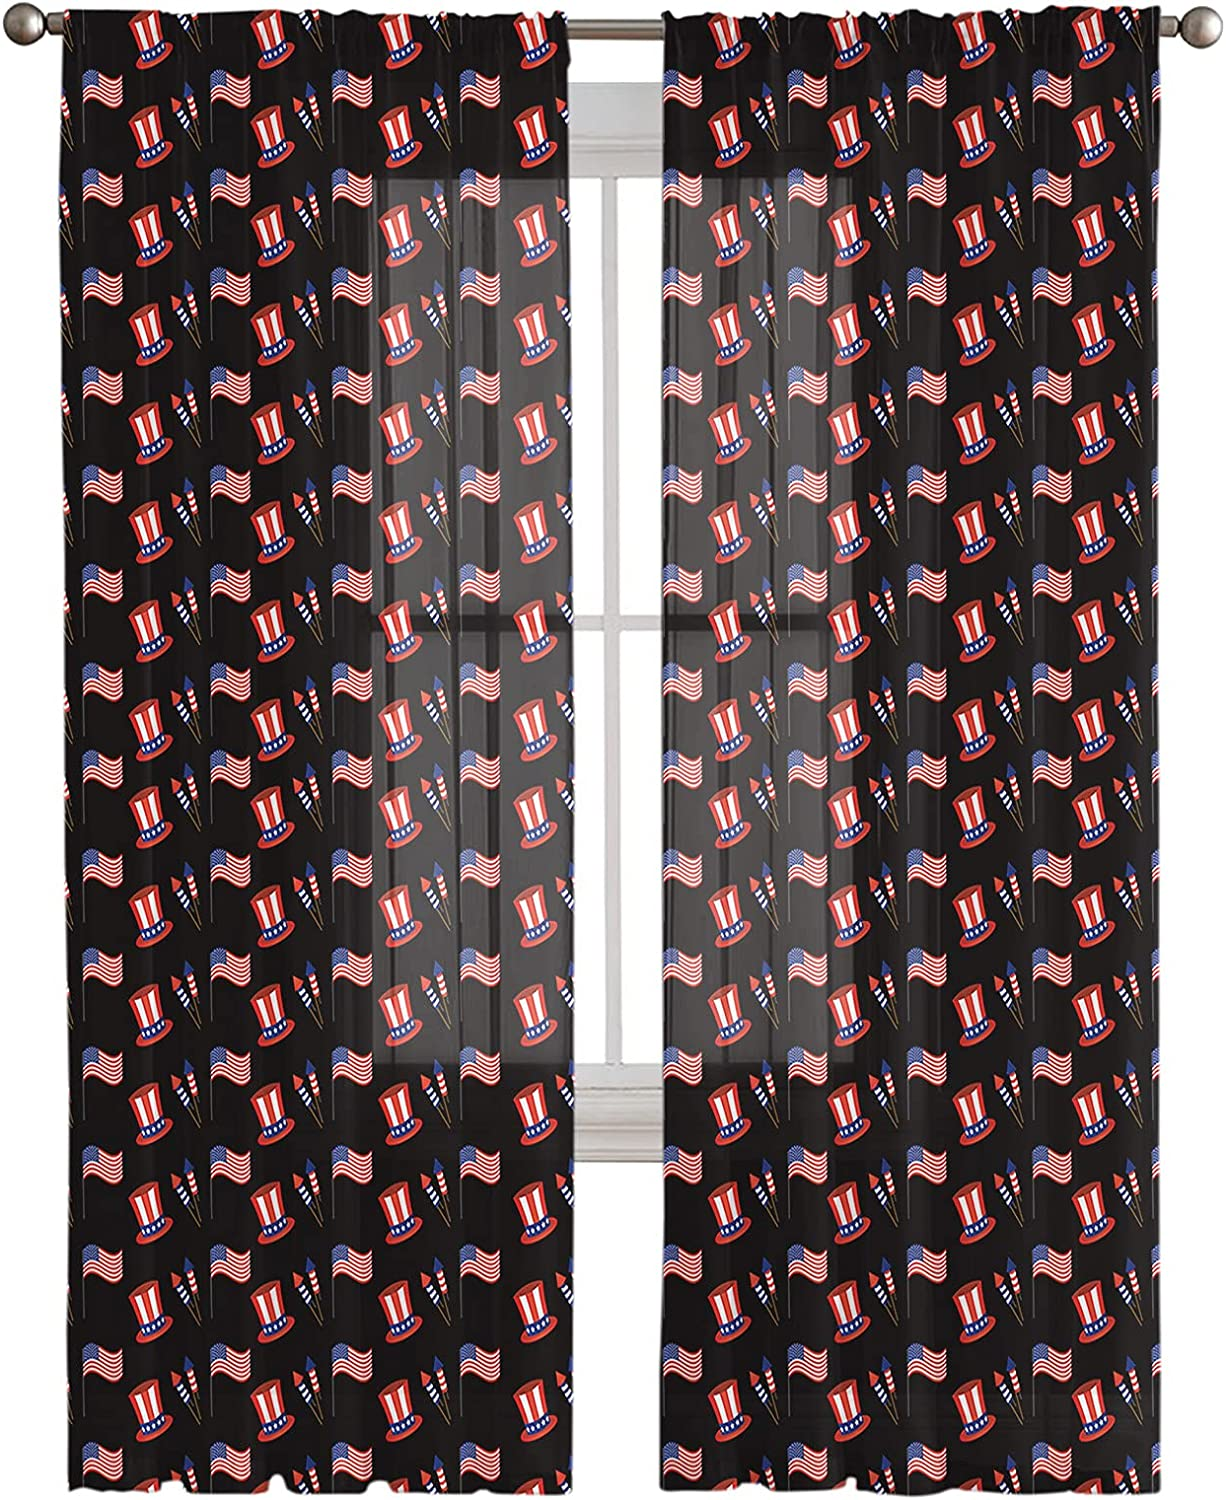 Outstanding Rod Pocket Regular store Semi Sheer Curtains and American Flag Balloon Firewor